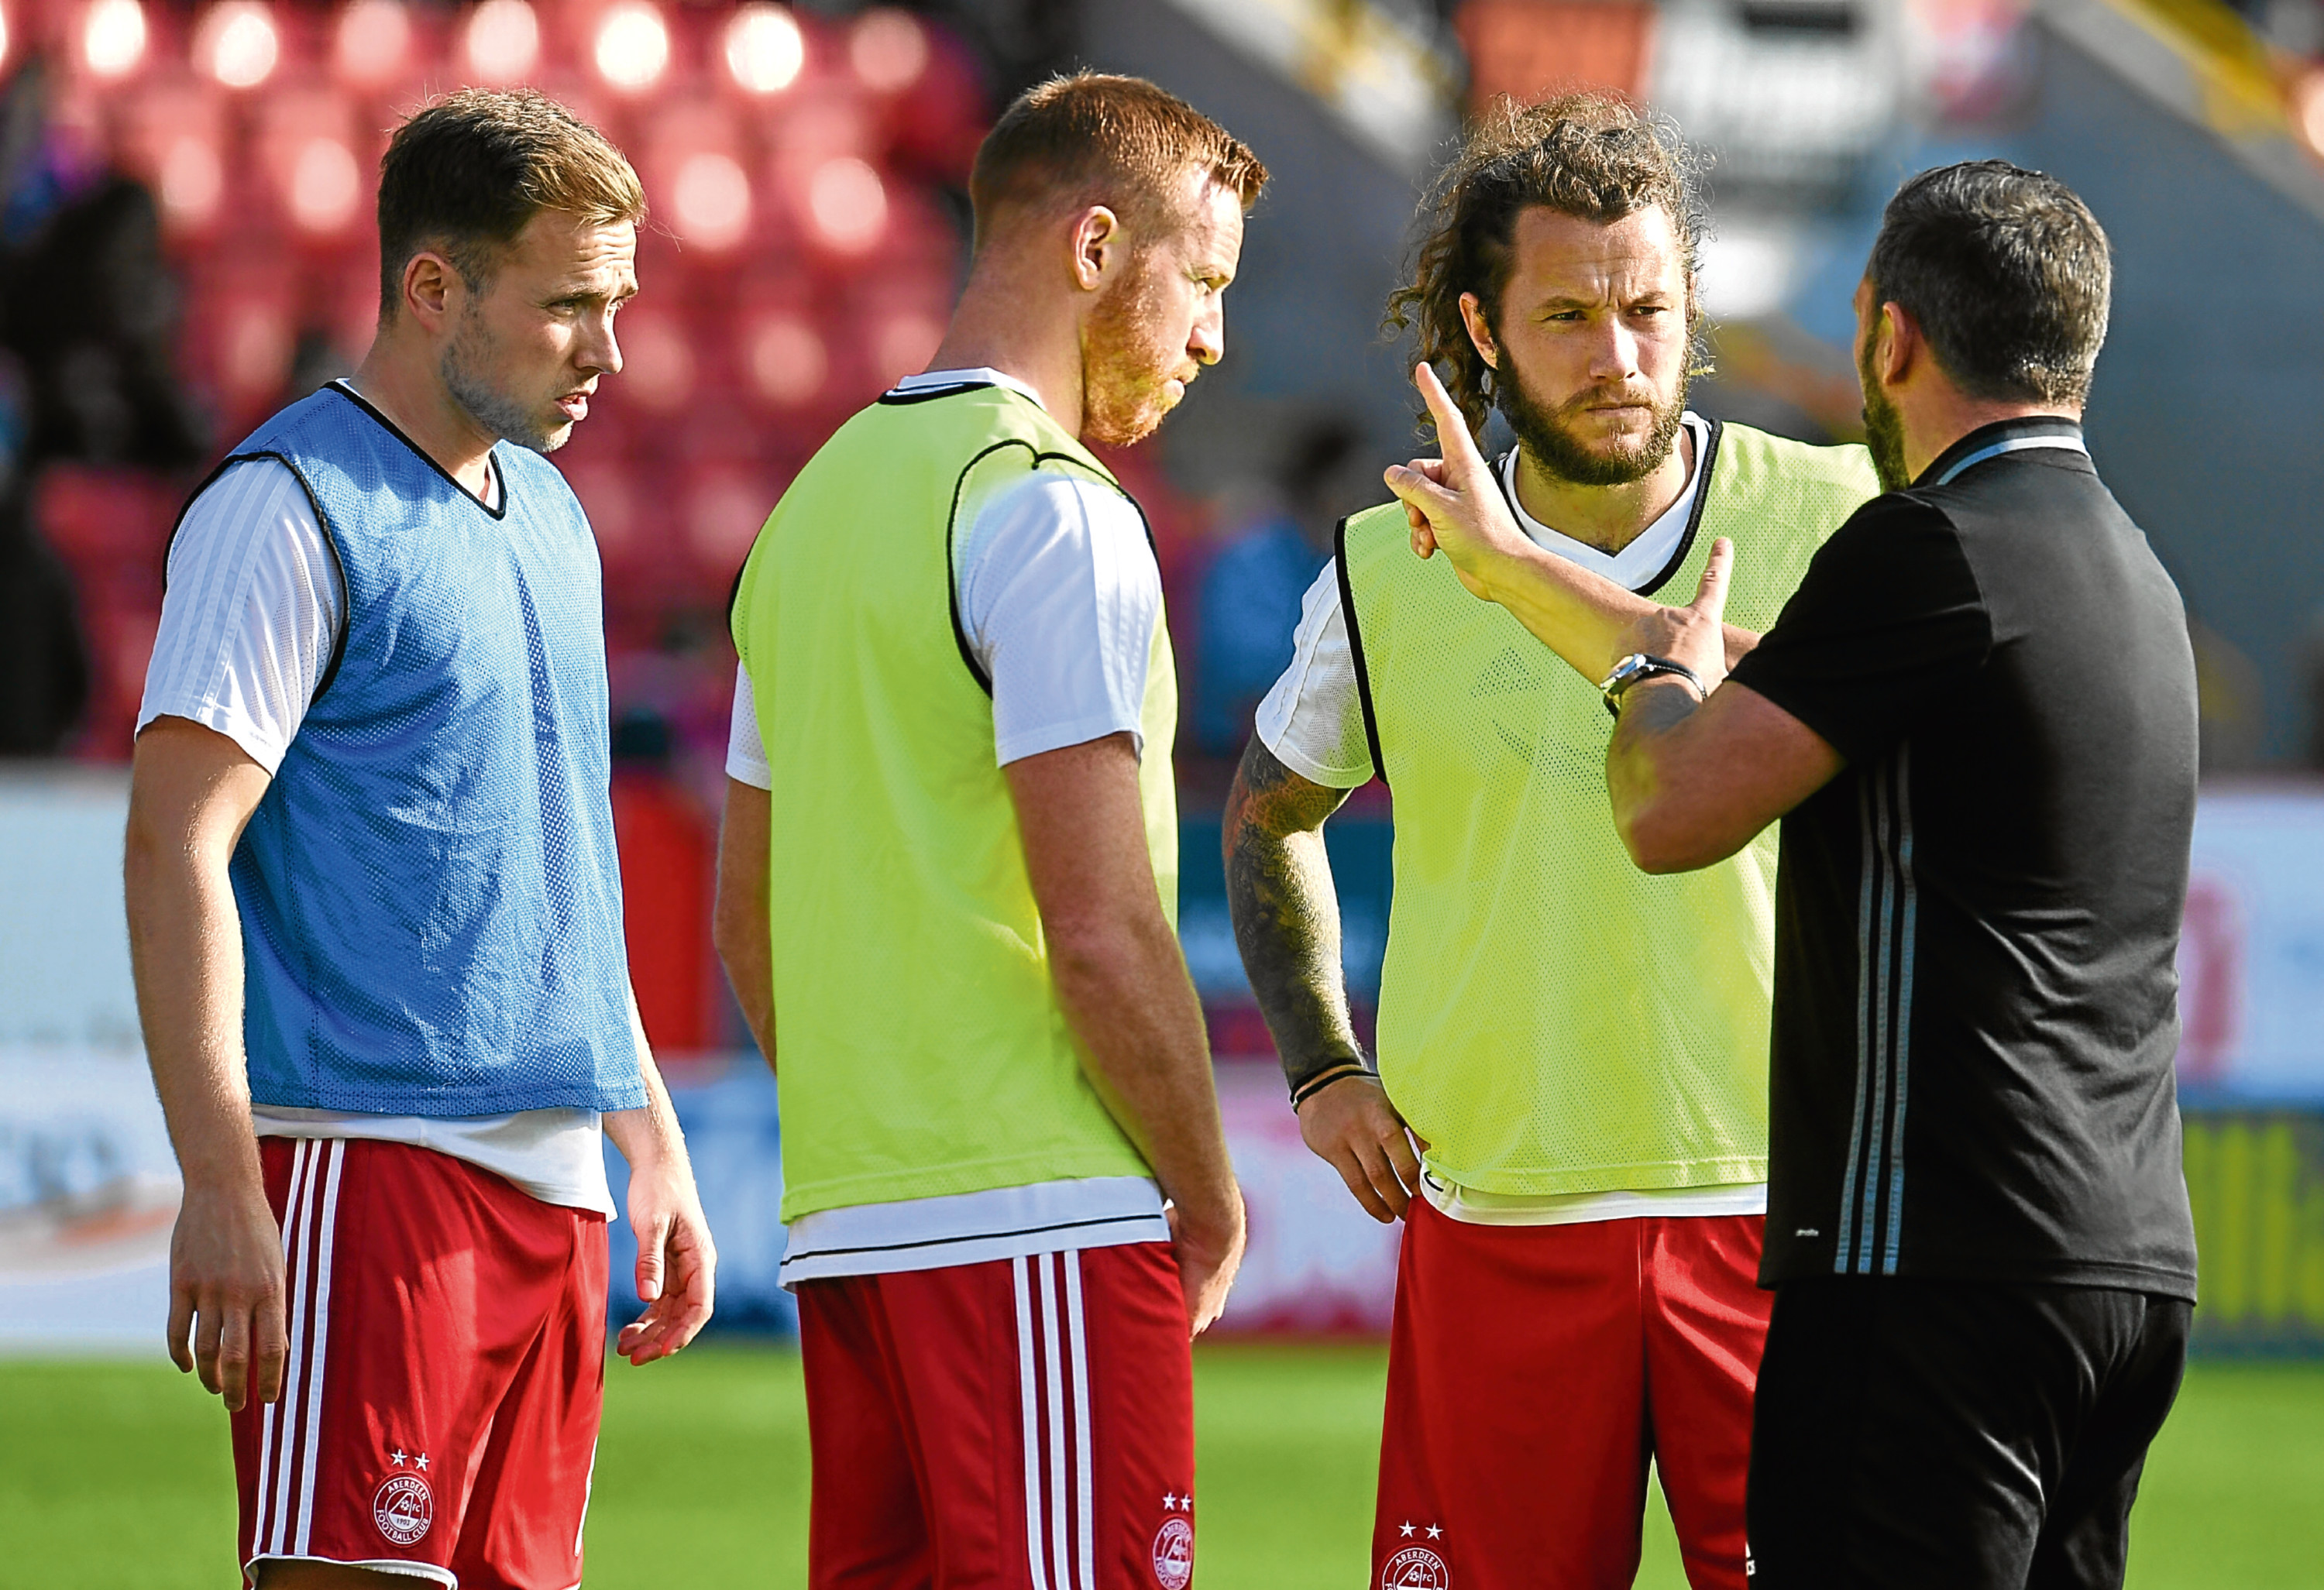 Aberdeen manager Derek McInnes speaks with Greg Stewart, Adam Rooney, and Stevie May.